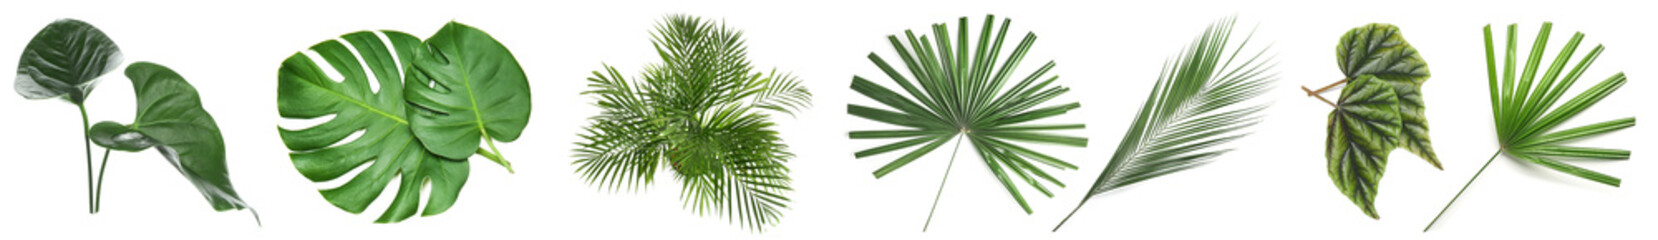 Foto op Plexiglas Bomen Set of green tropical leaves on white background